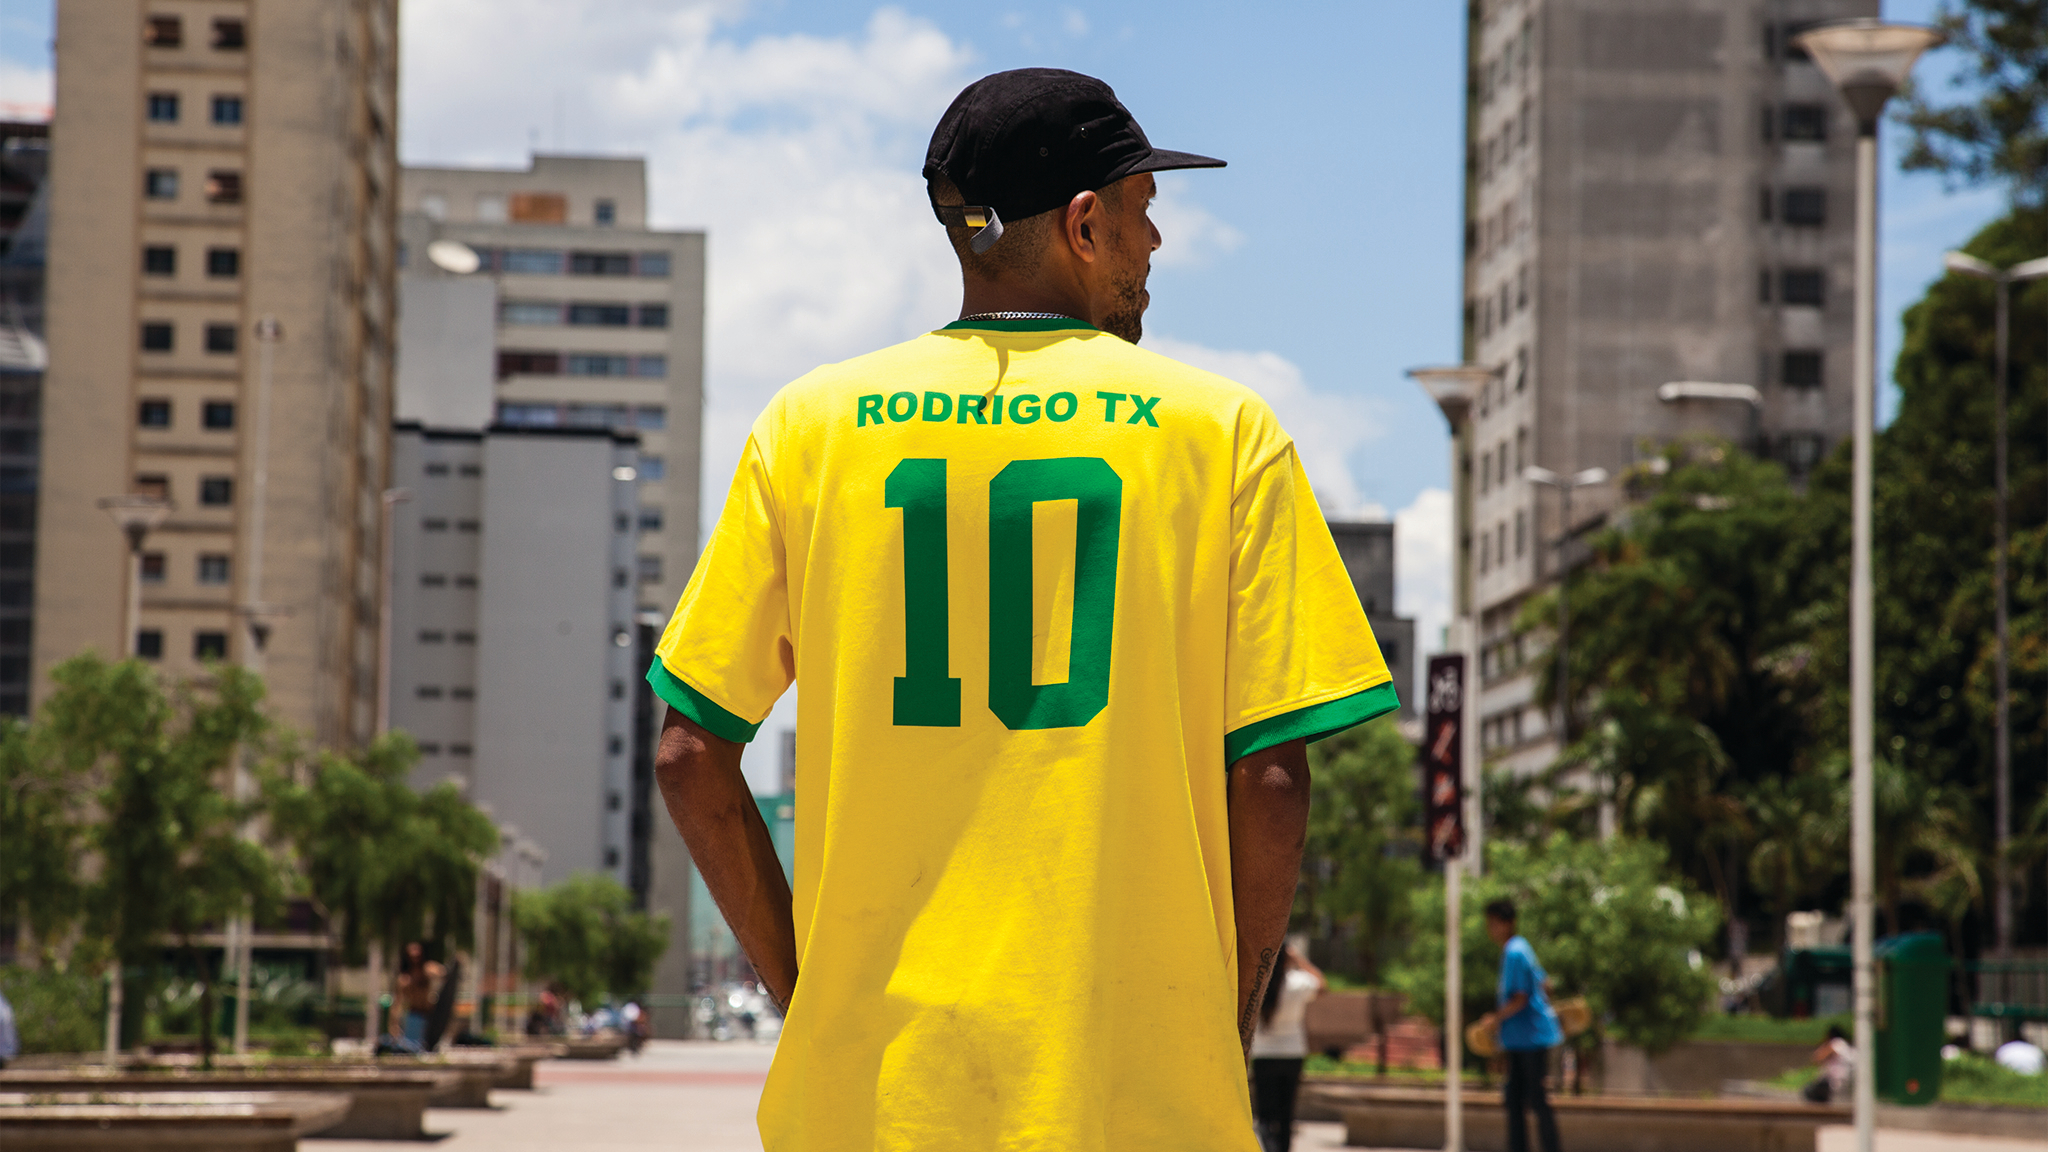 Rodrigo Tx for Team Brazil